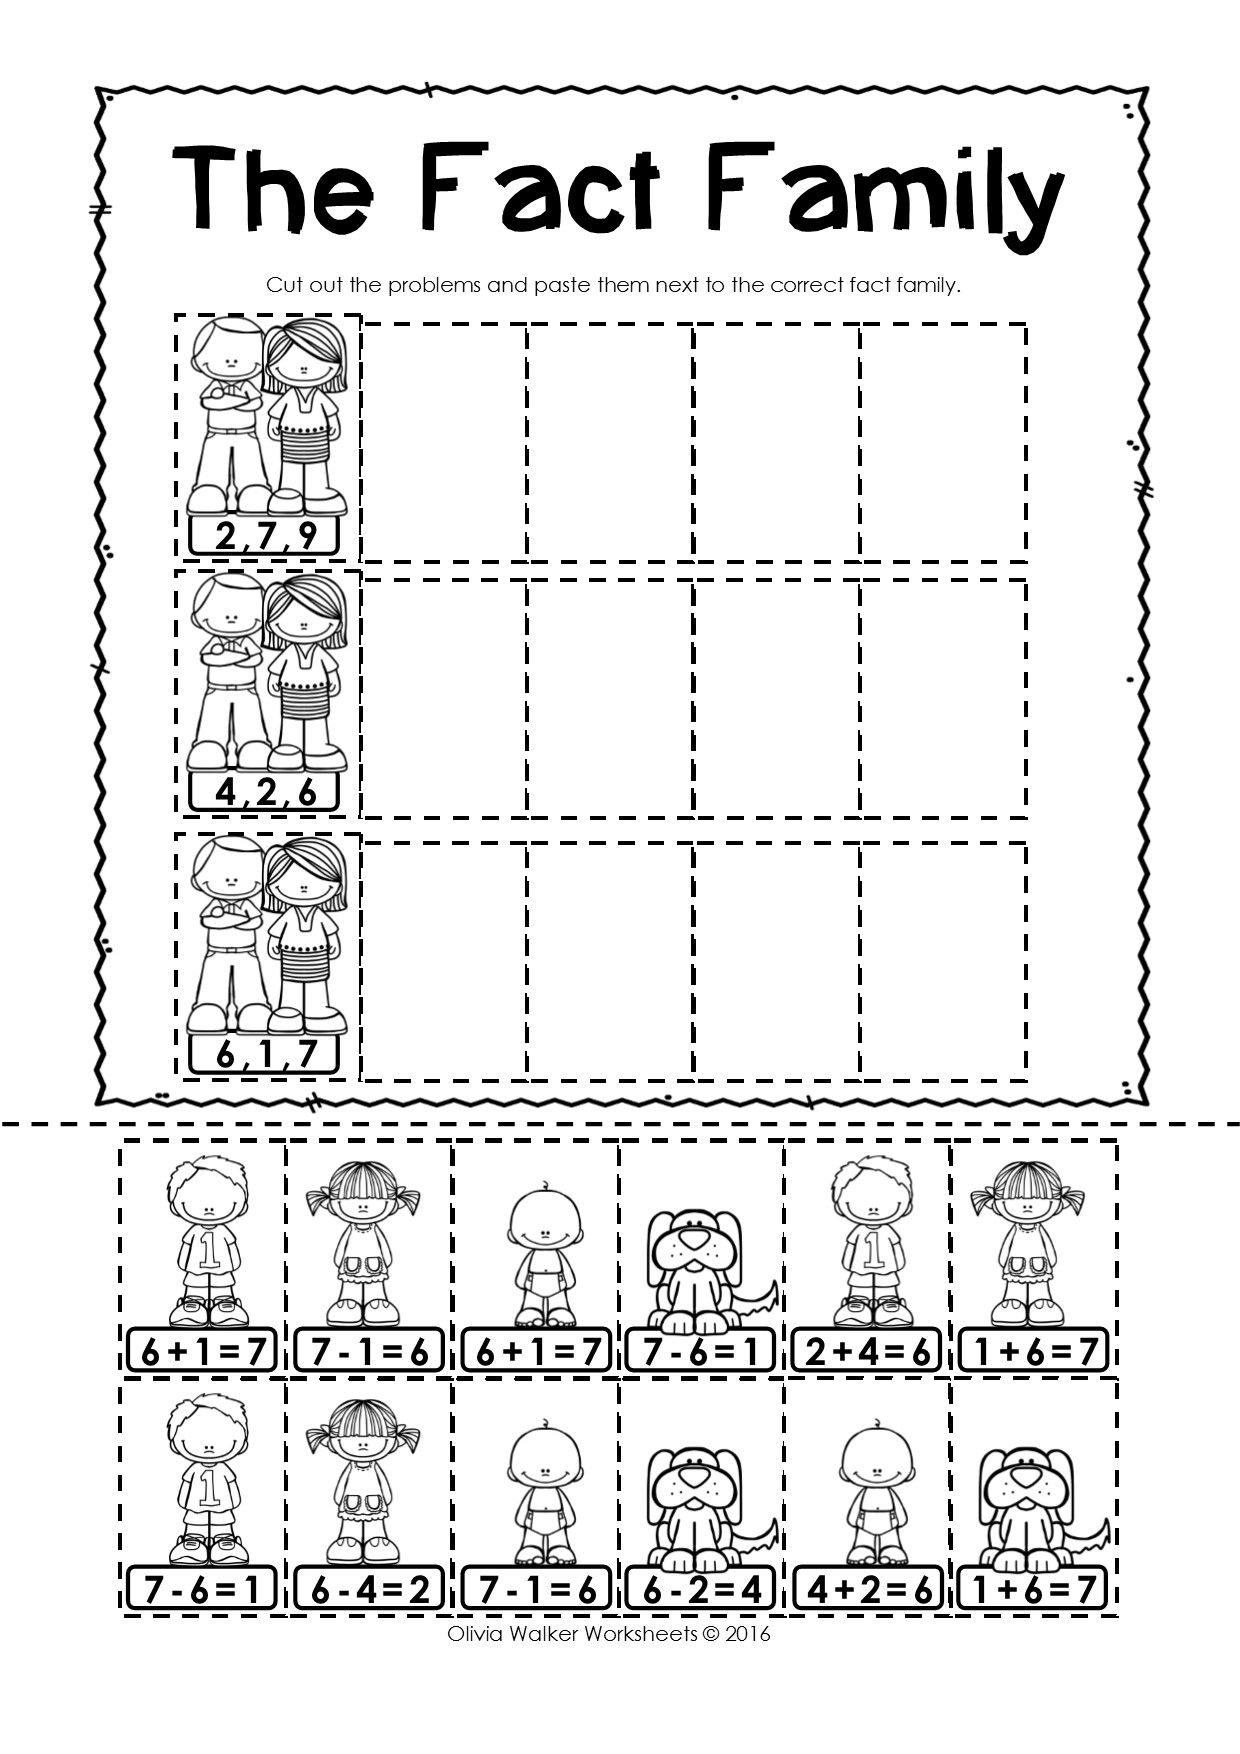 medium resolution of Pin on My Worksheets and Clip Art